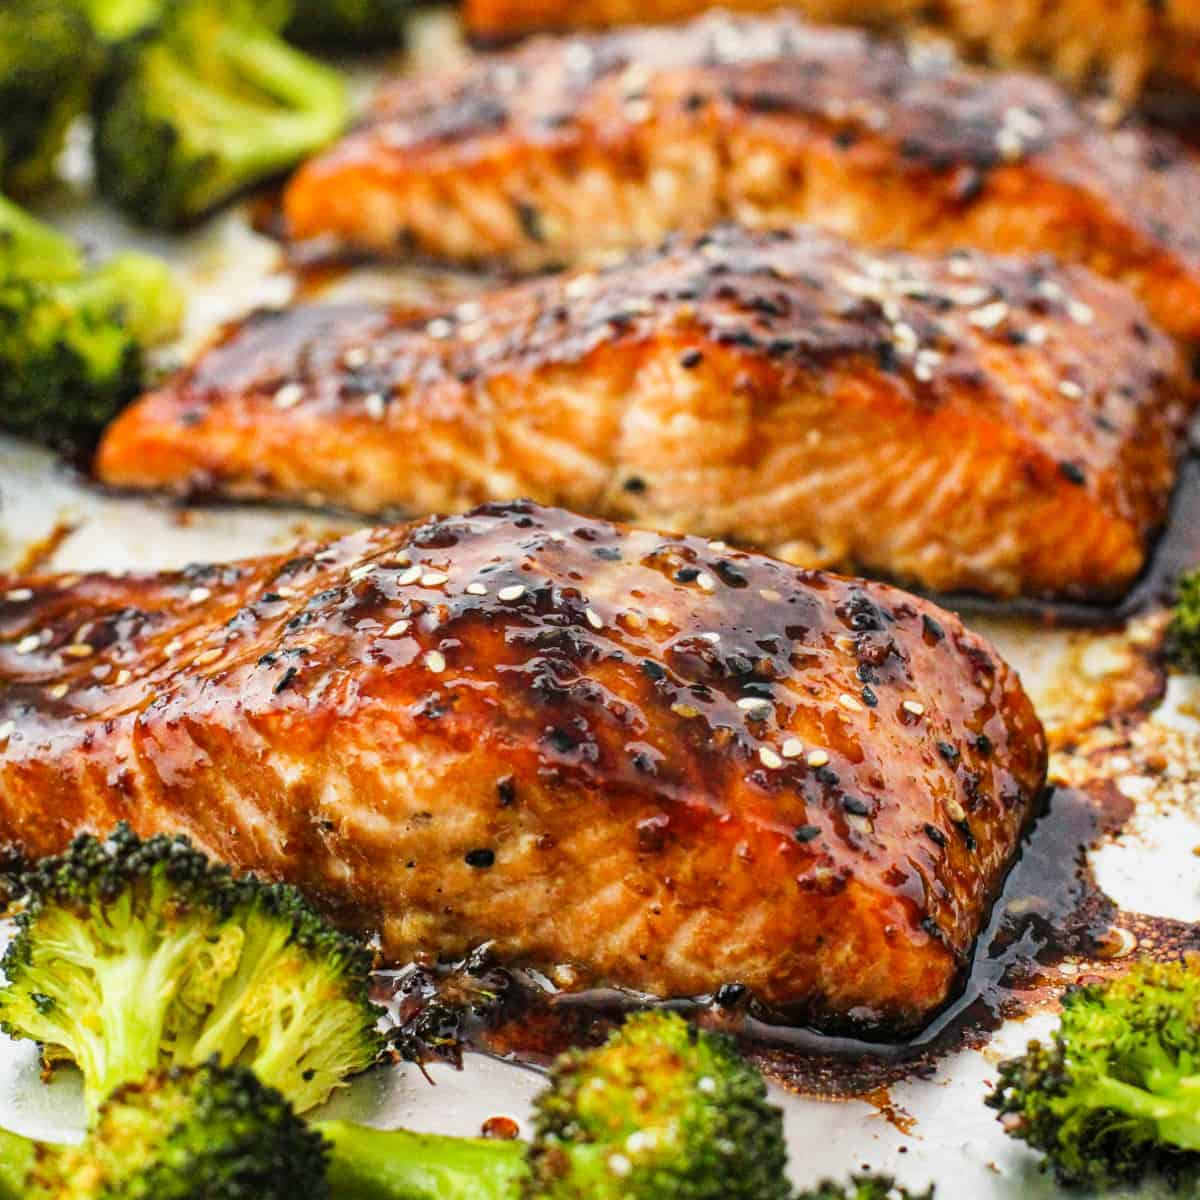 Side angle view of the completed salmon shown covered in soy ginger glaze with roasted broccoli.